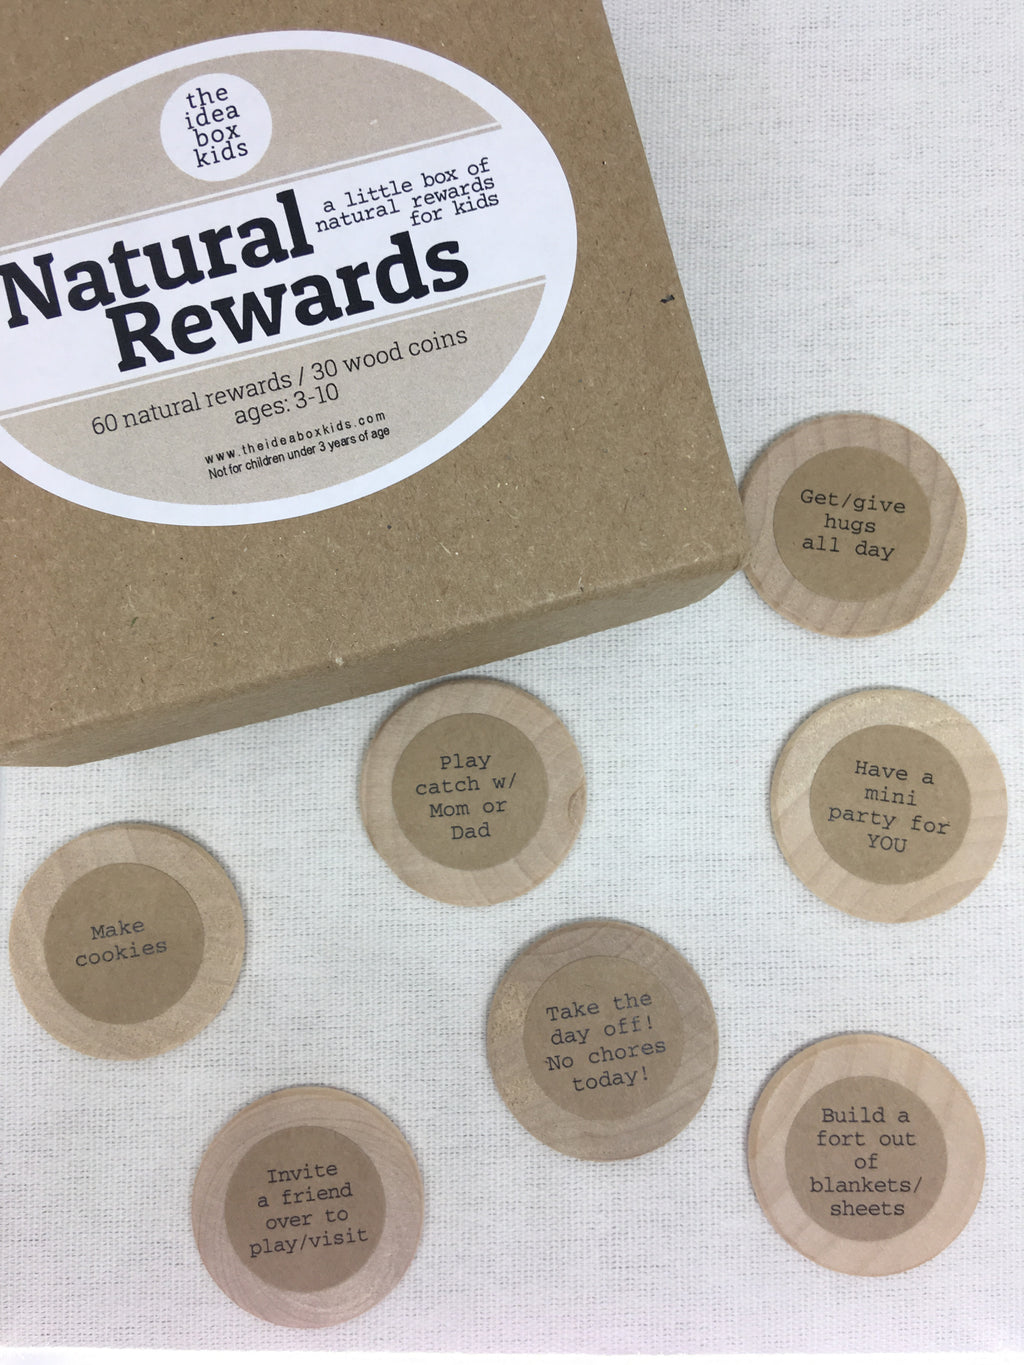 The Idea Box Kids-Natural Rewards Box